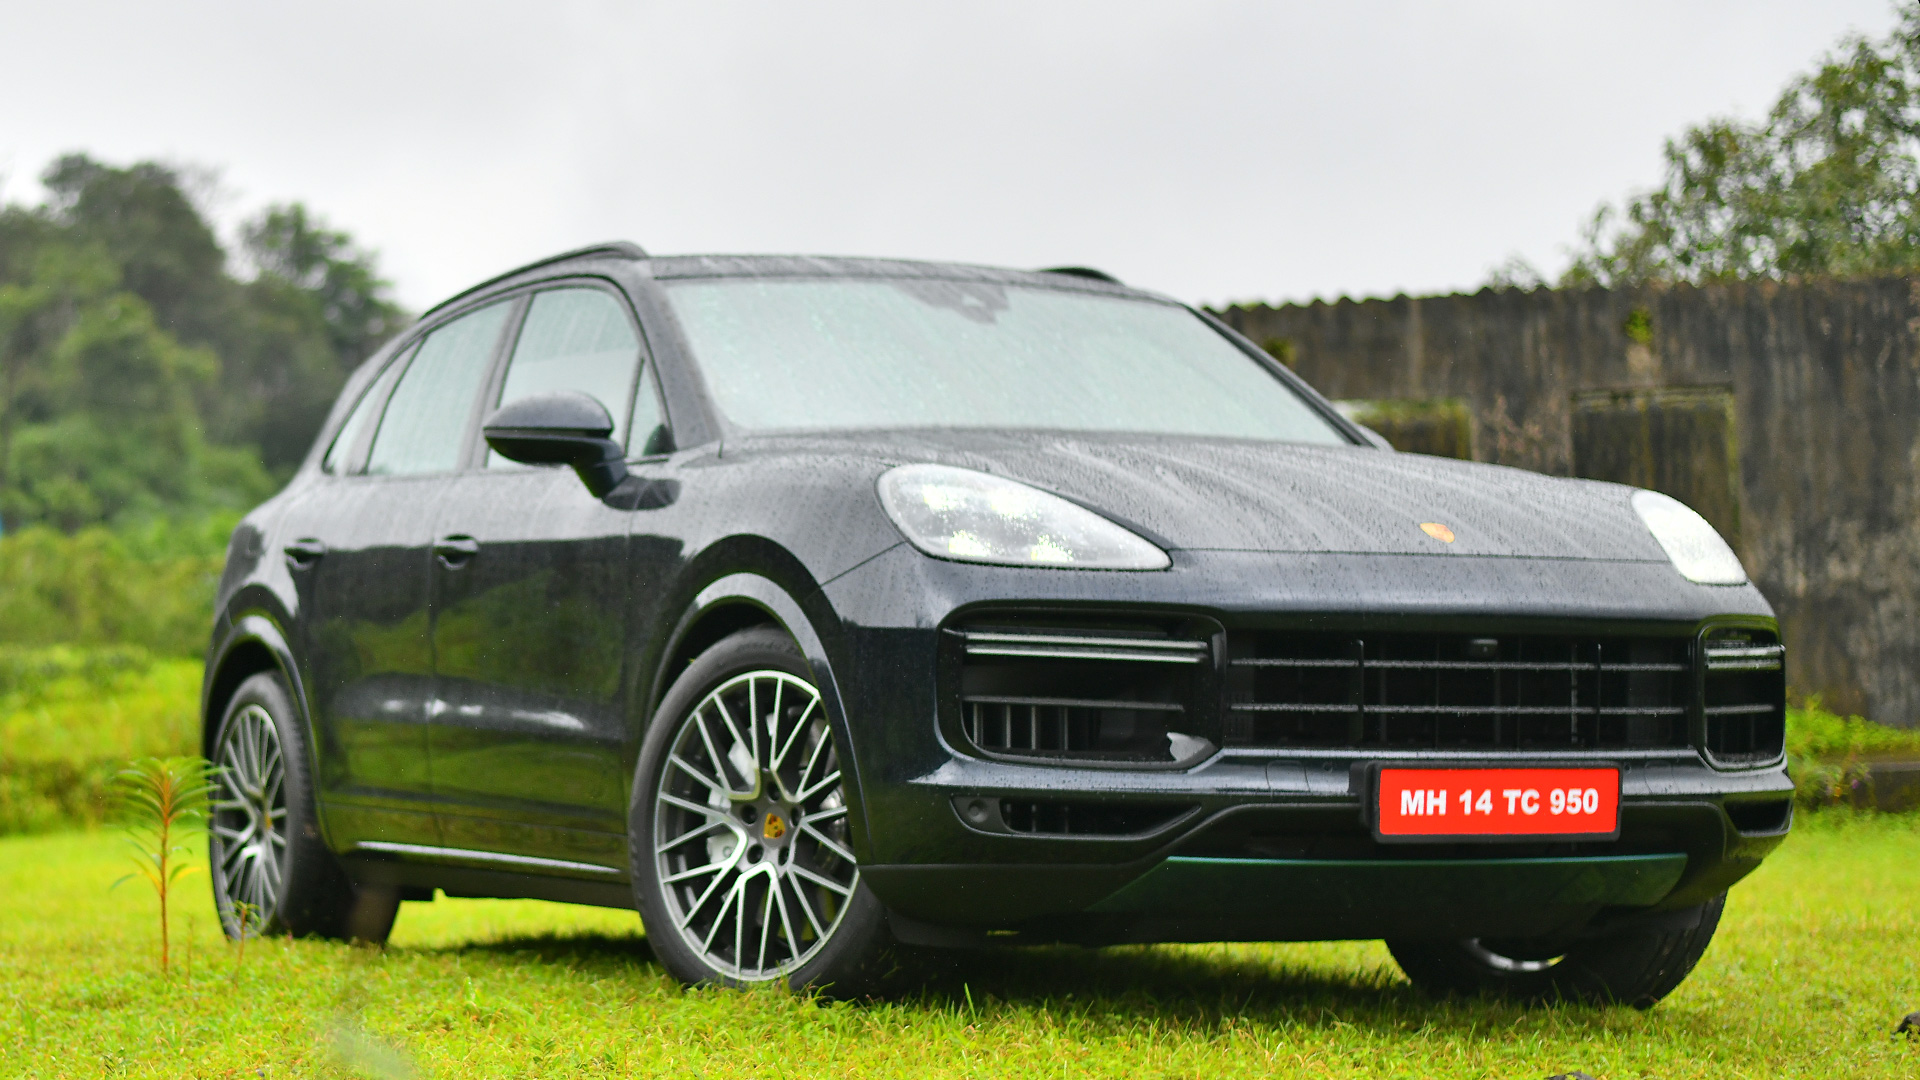 Porsche Cayenne 2019 - Price, Mileage, Reviews ...